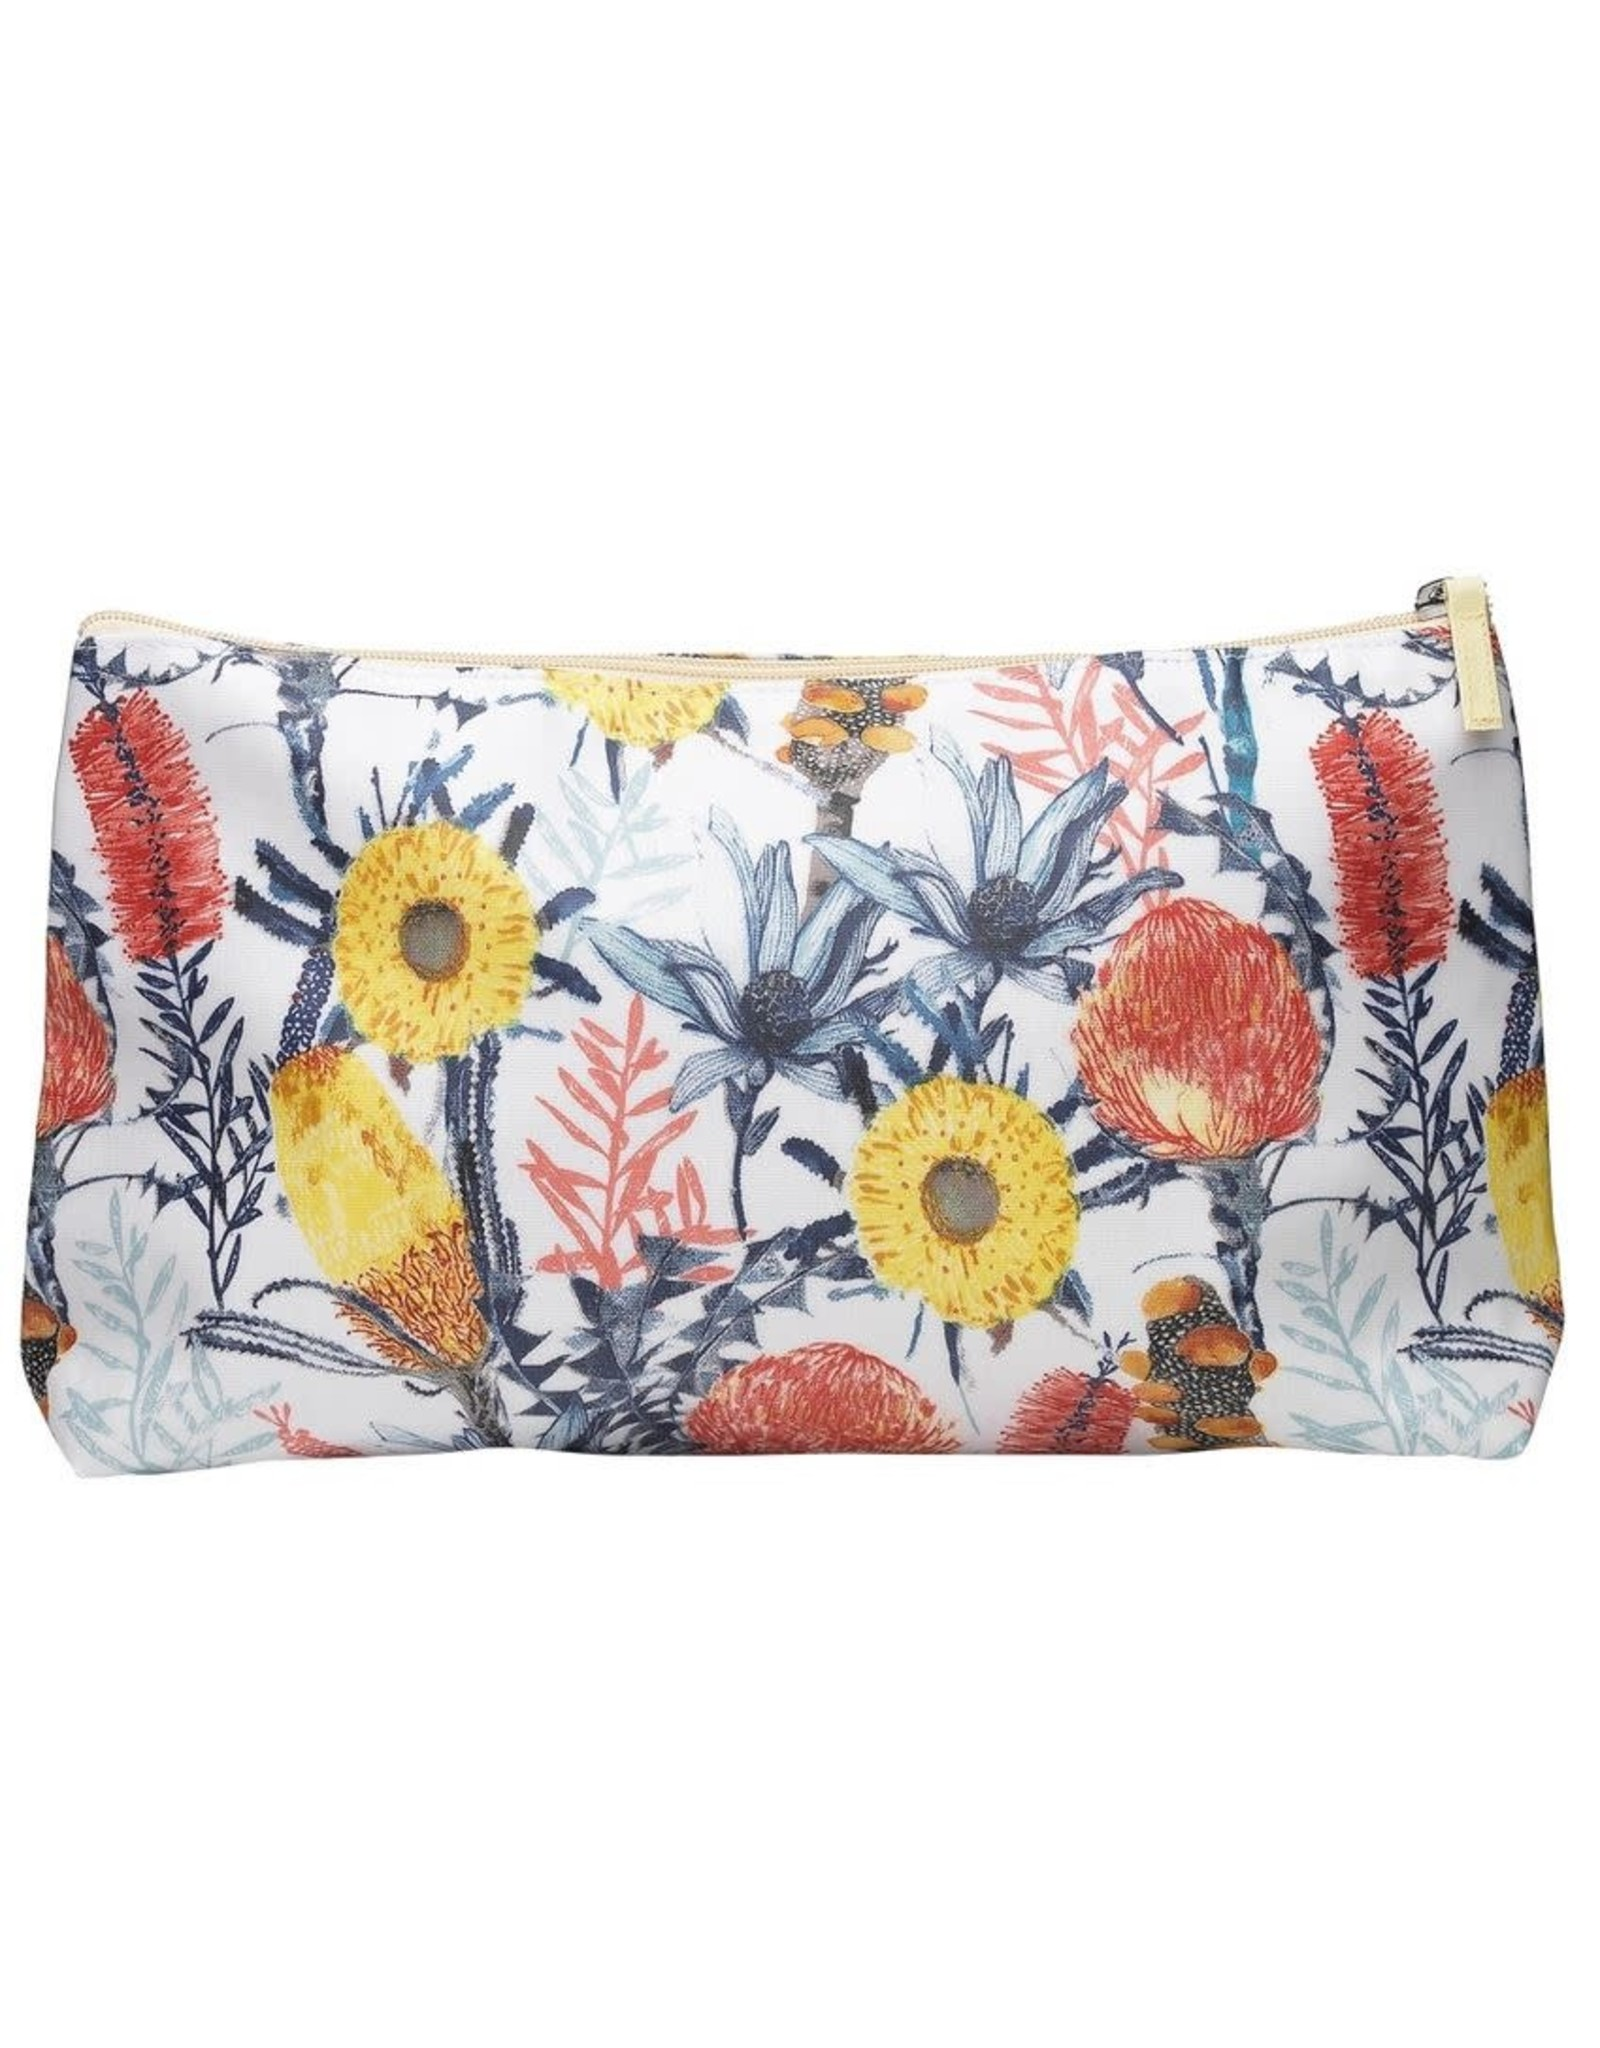 Ecology Florae Travel Accessories